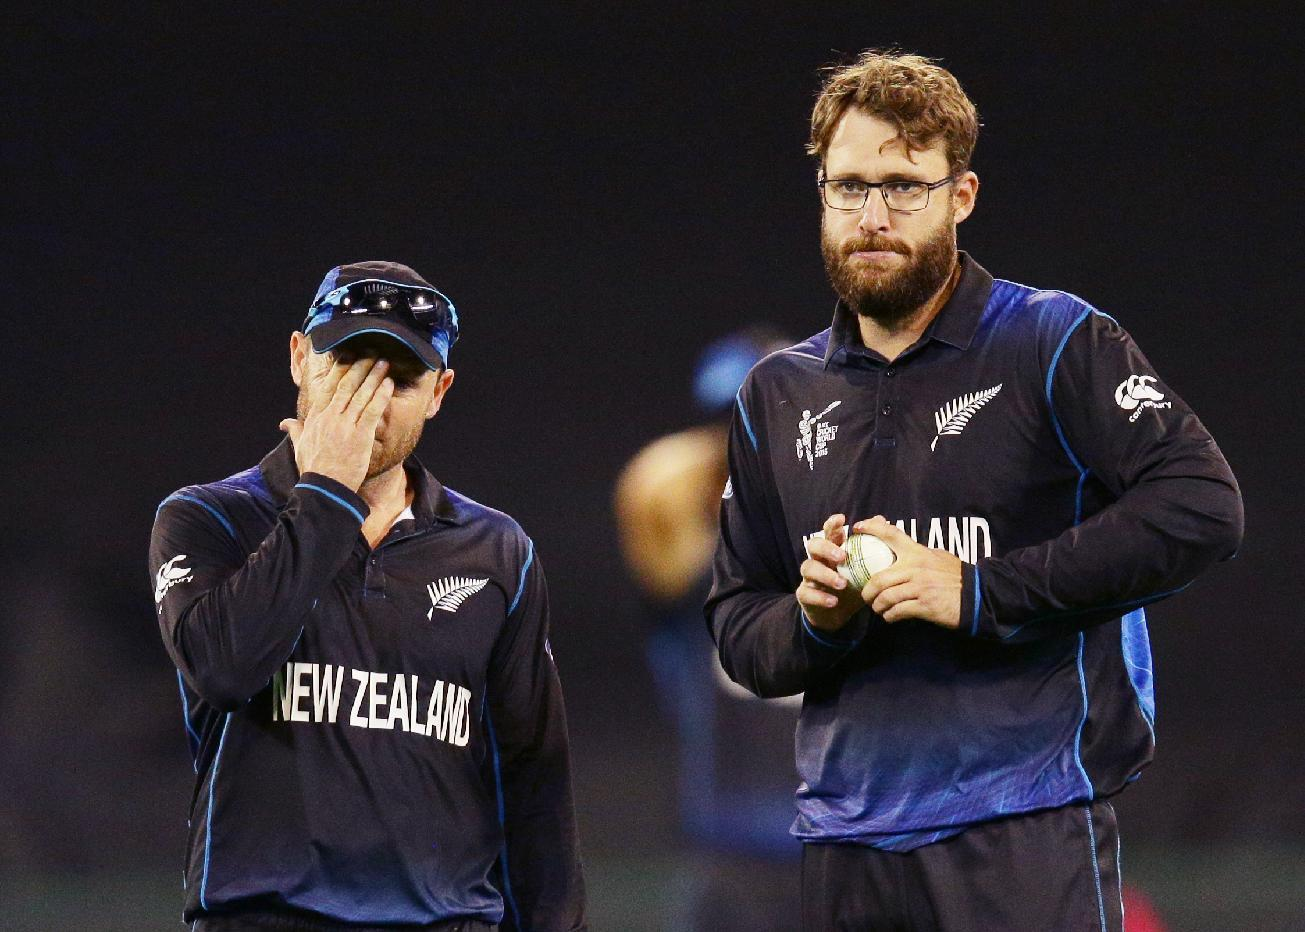 Daniel Vettori confirms retirement from NZ cricket